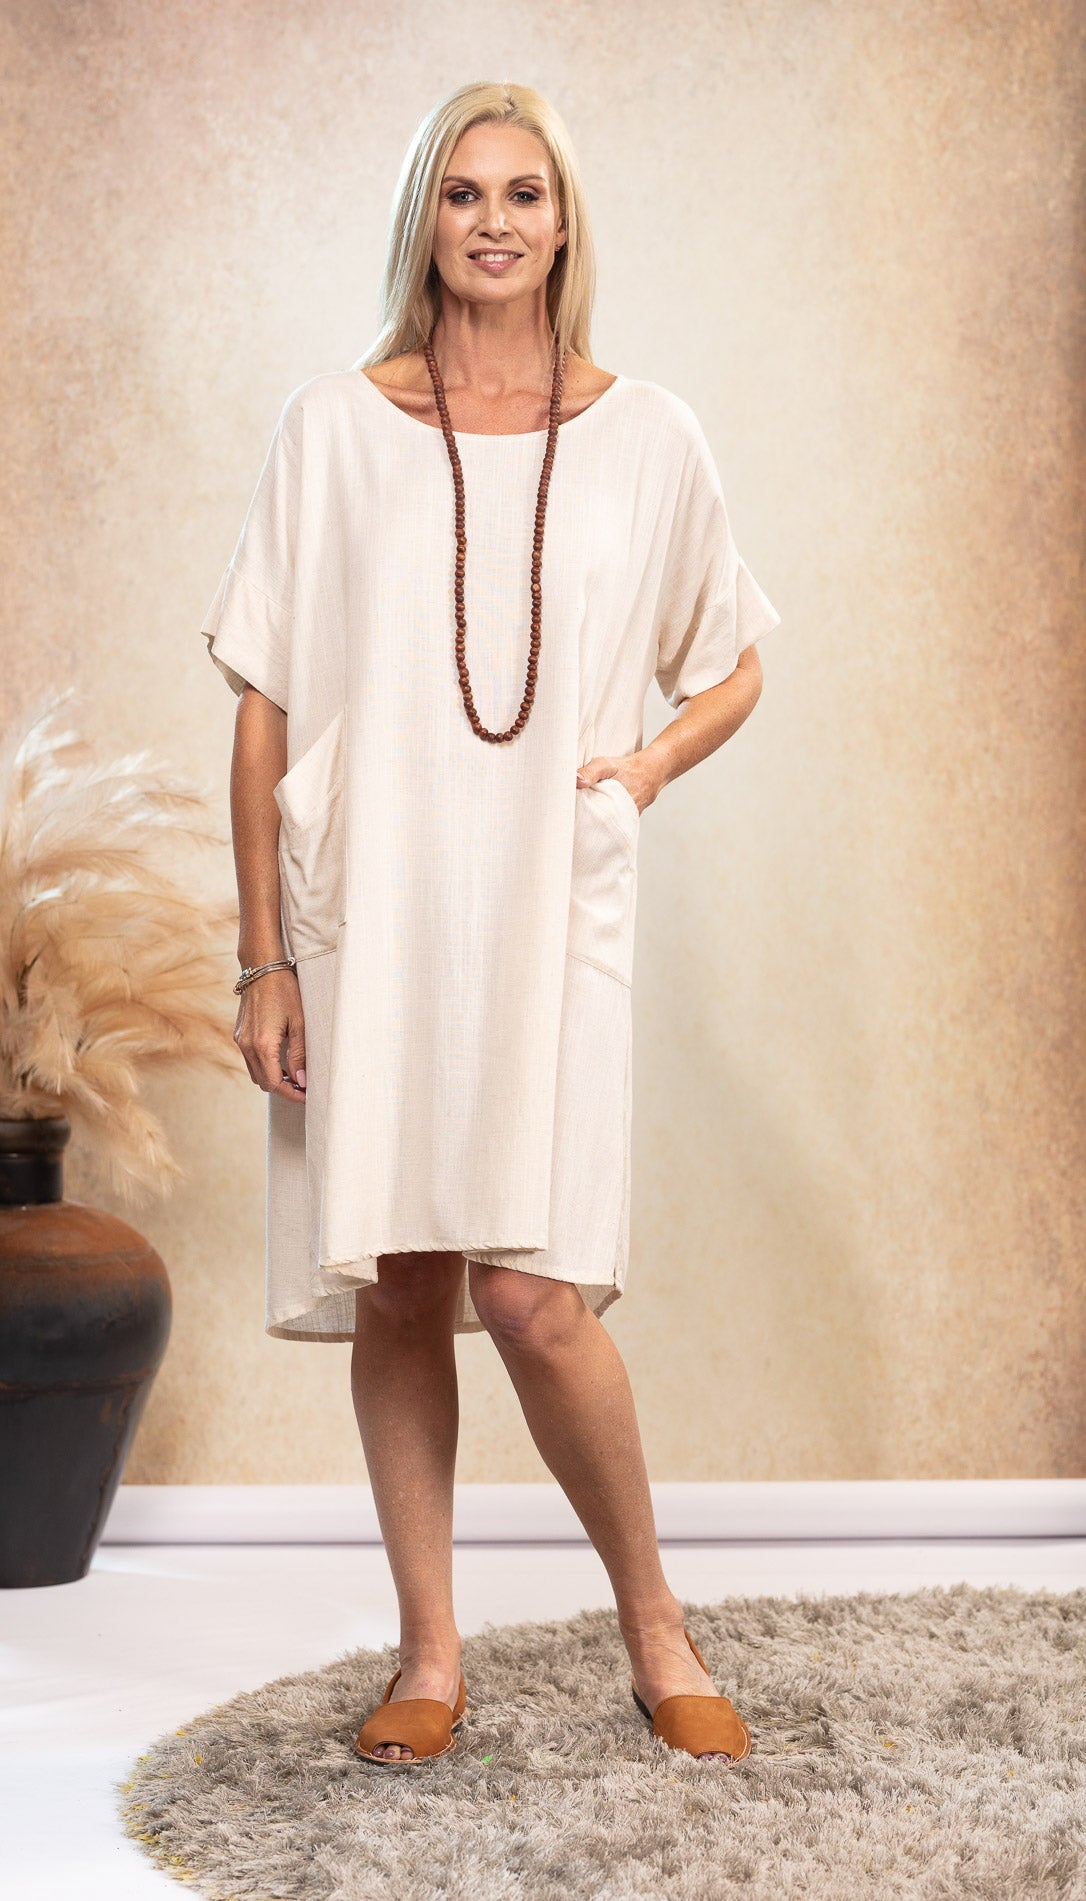 The Shift Linen Dress in Sand